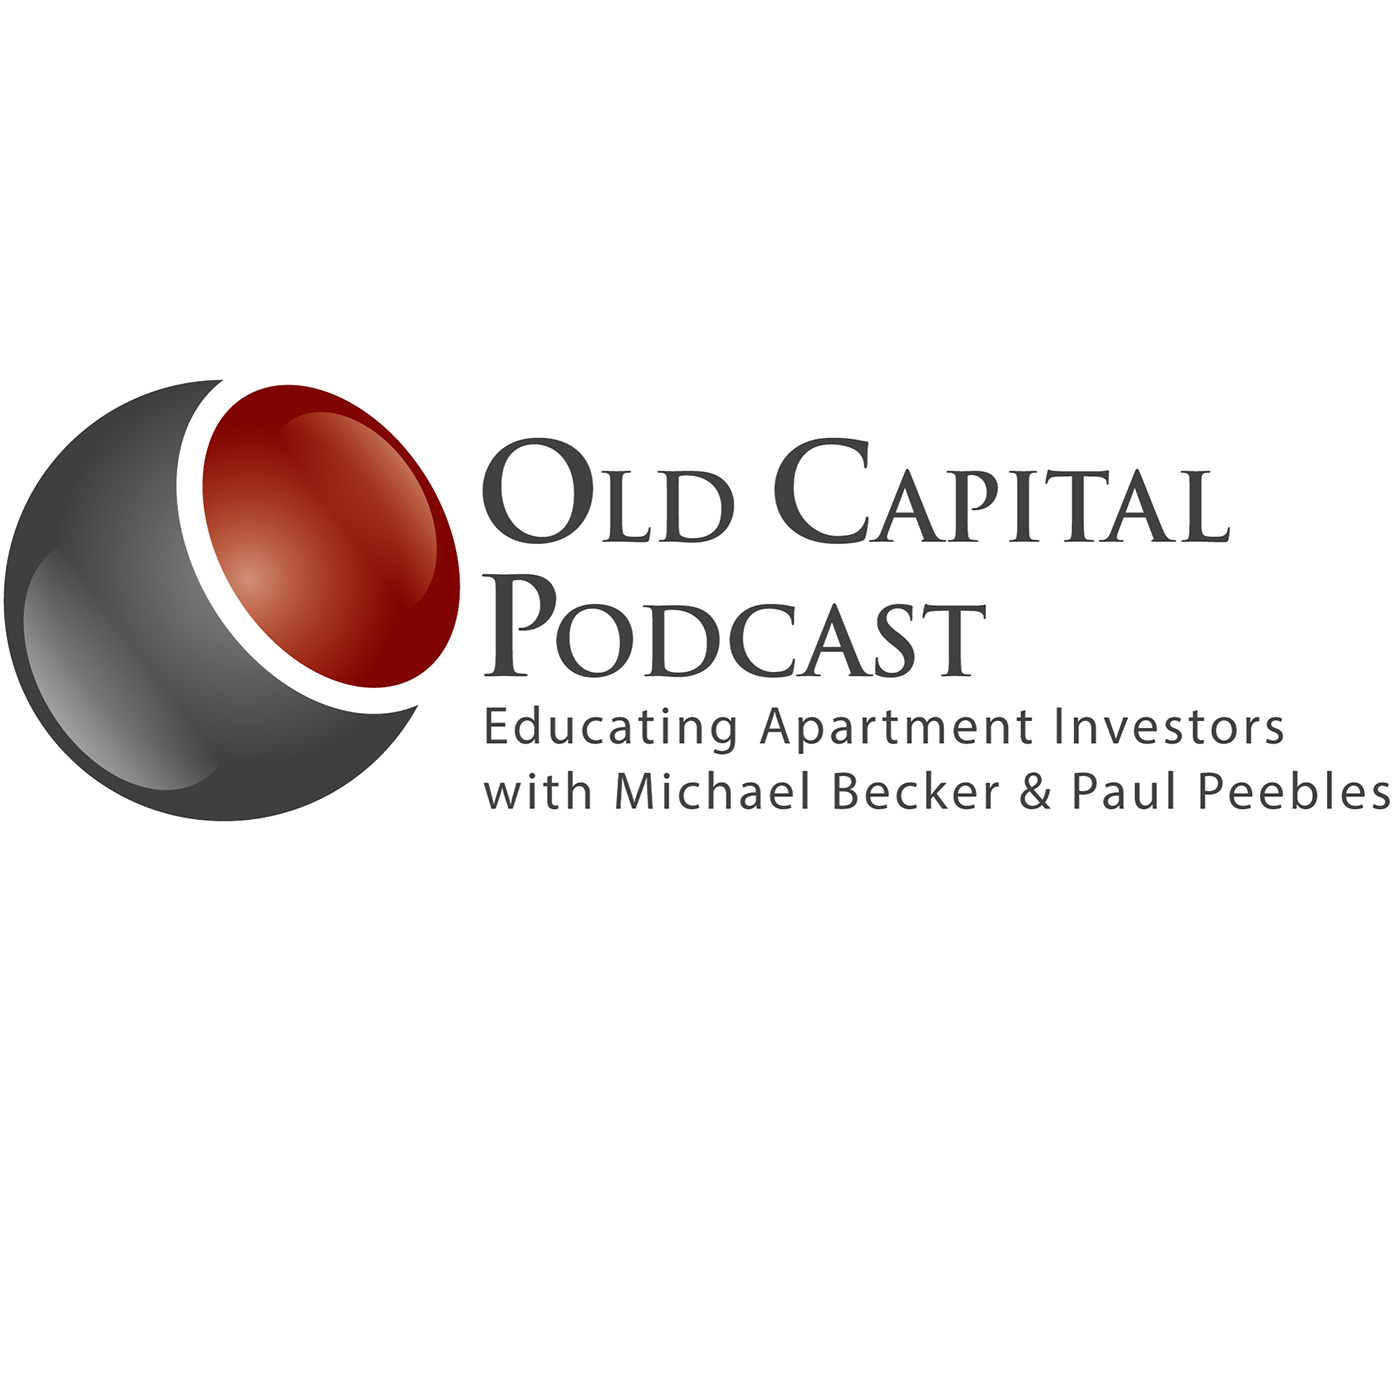 Artwork for Episode 194 - Where are LONG and SHORT interest rates headed? Interest Rate Expert, JP CONKLIN with Pensford, explains what commercial real estate investors need to know